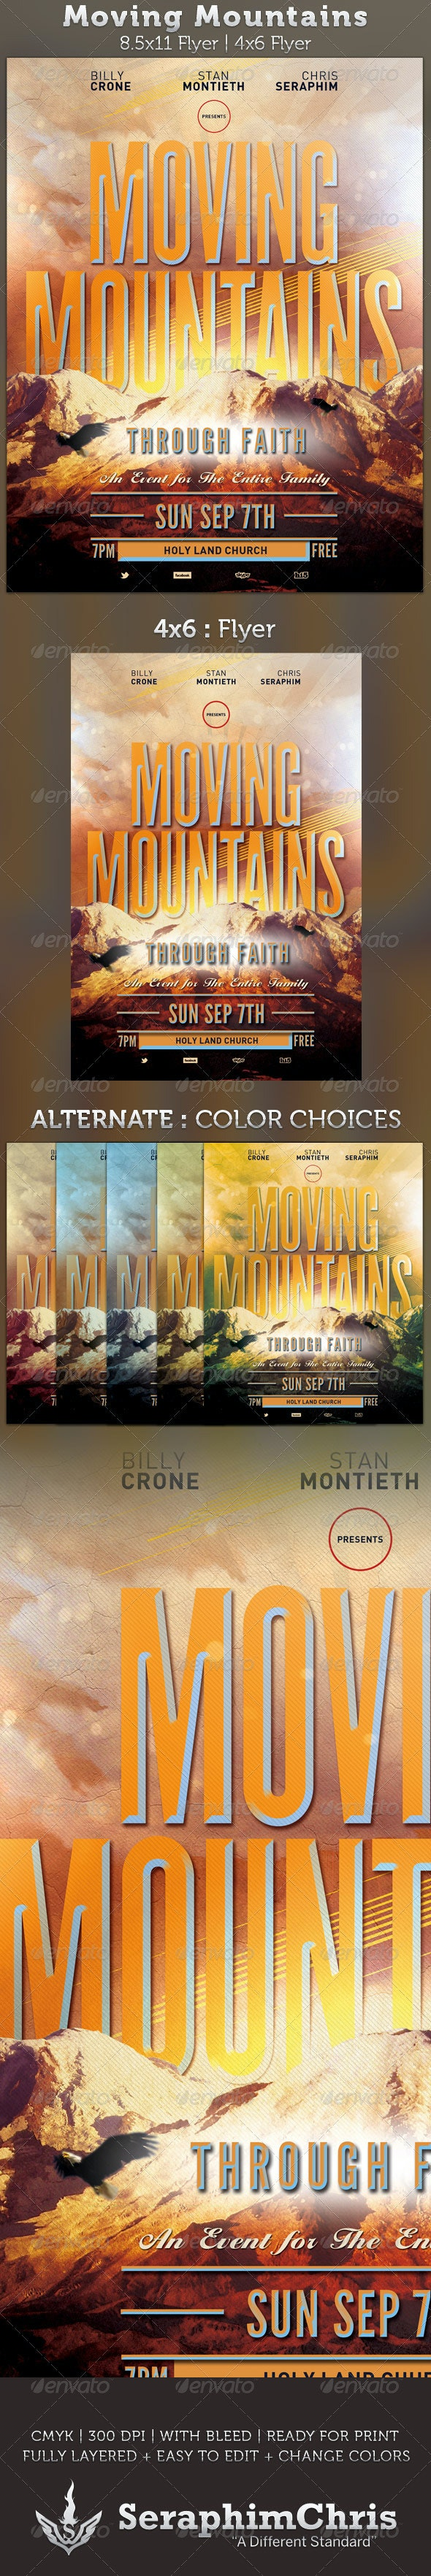 Moving Mountains: Church Flyer Template - Church Flyers